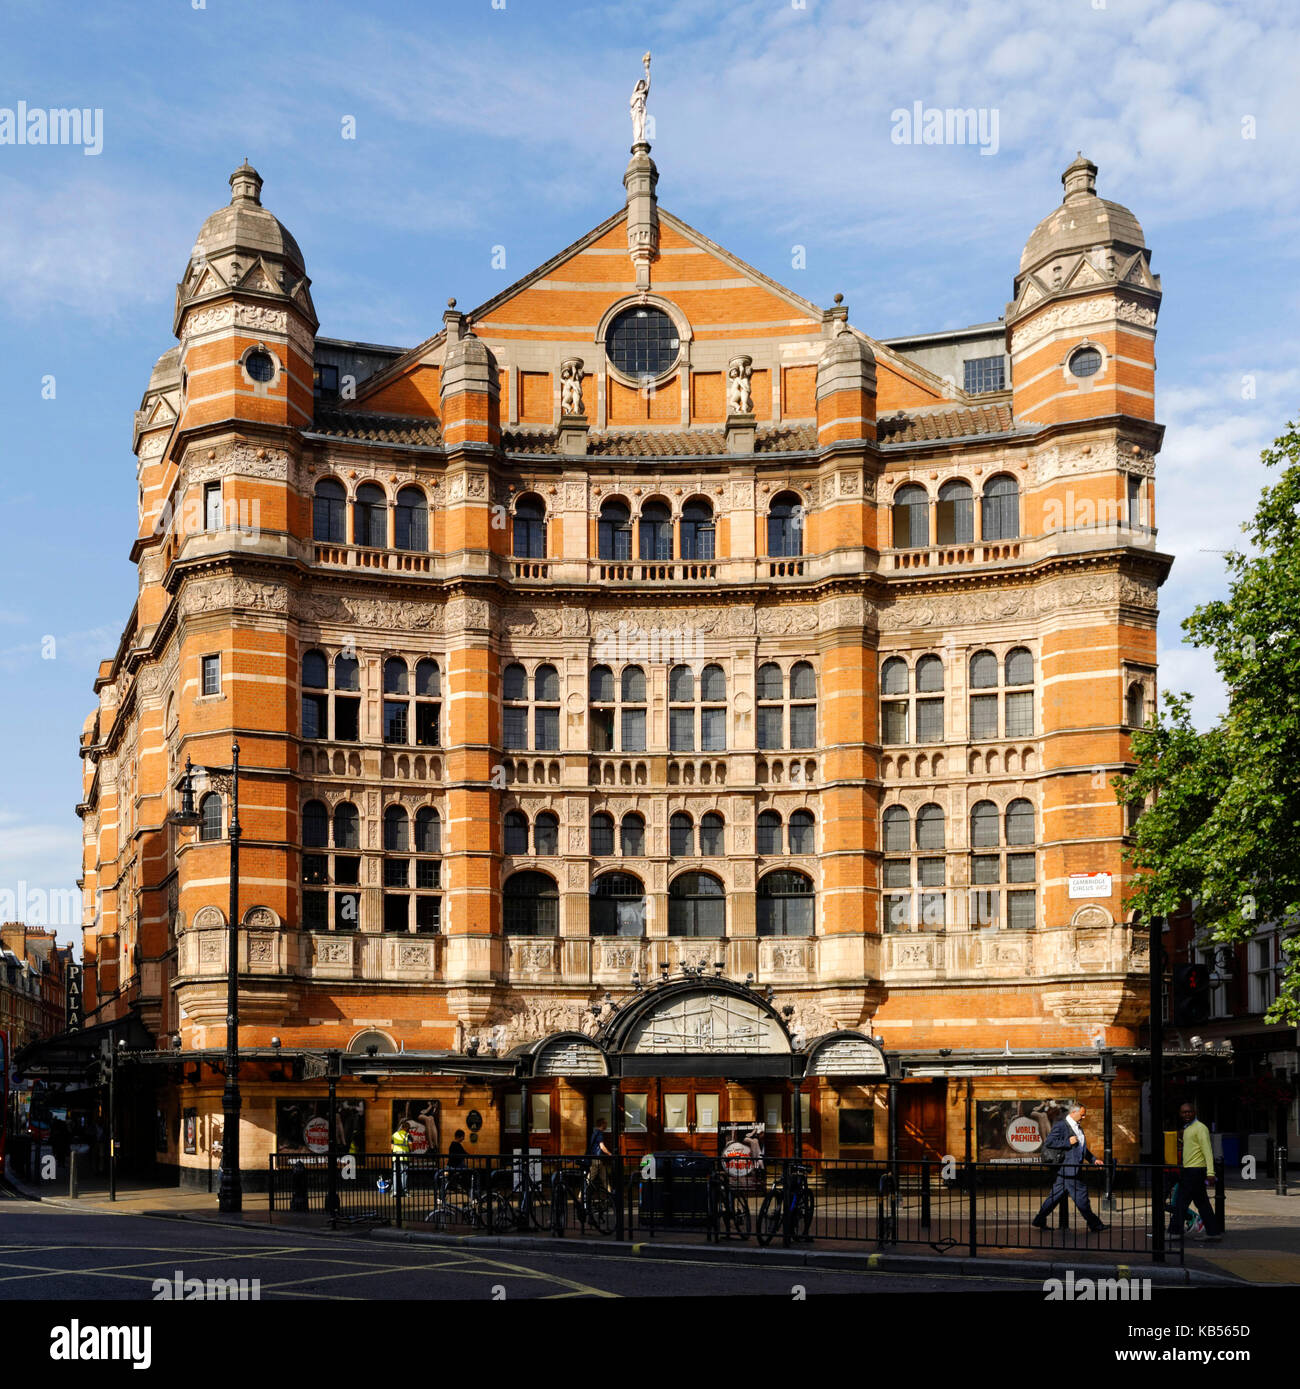 United Kingdom, London, Soho, Palace theatre, Shaftesbury Ave - Stock Image